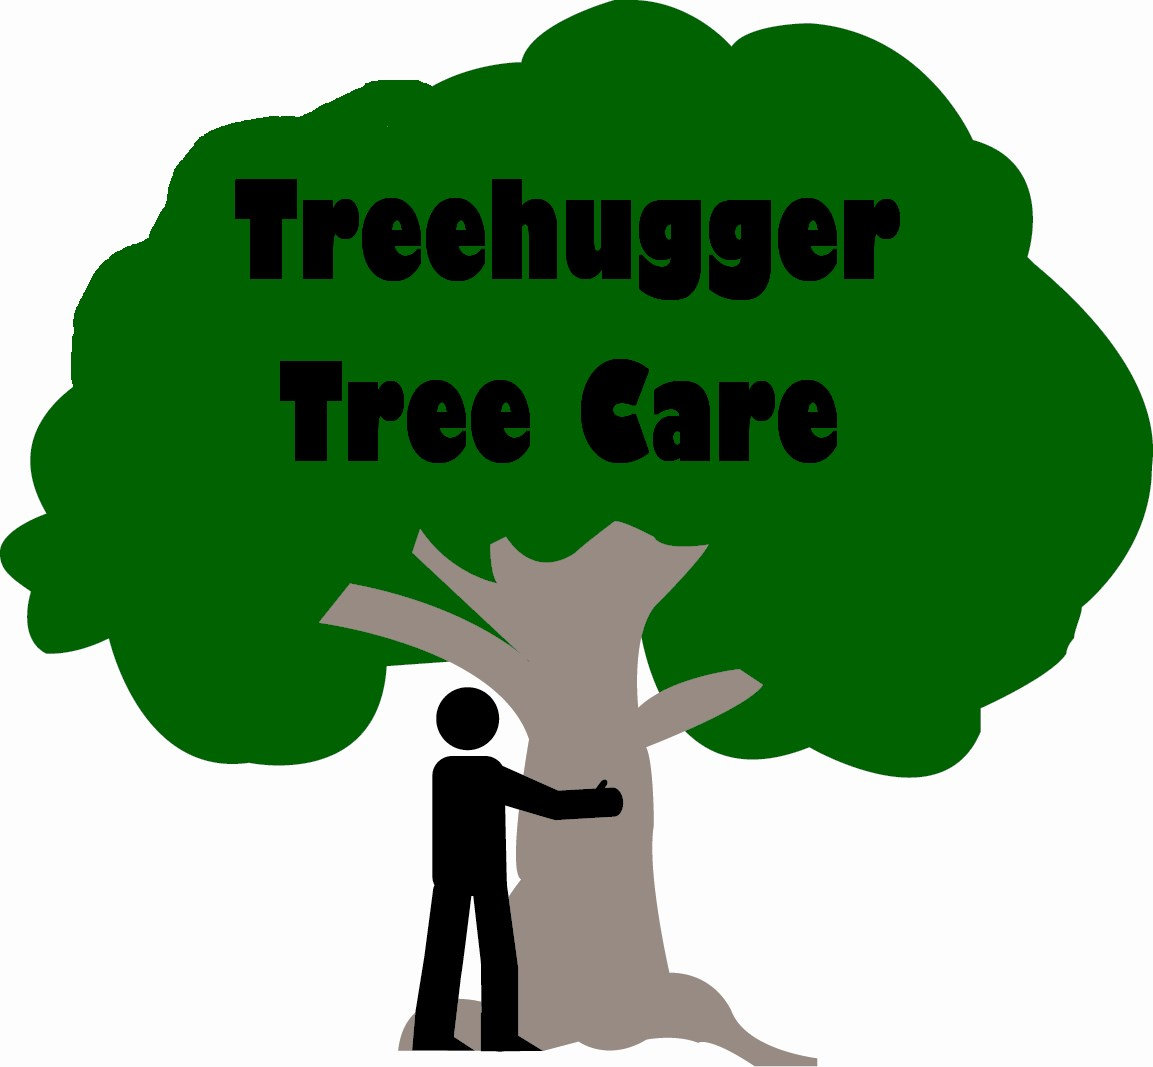 Treehugger Tree Care Inc logo